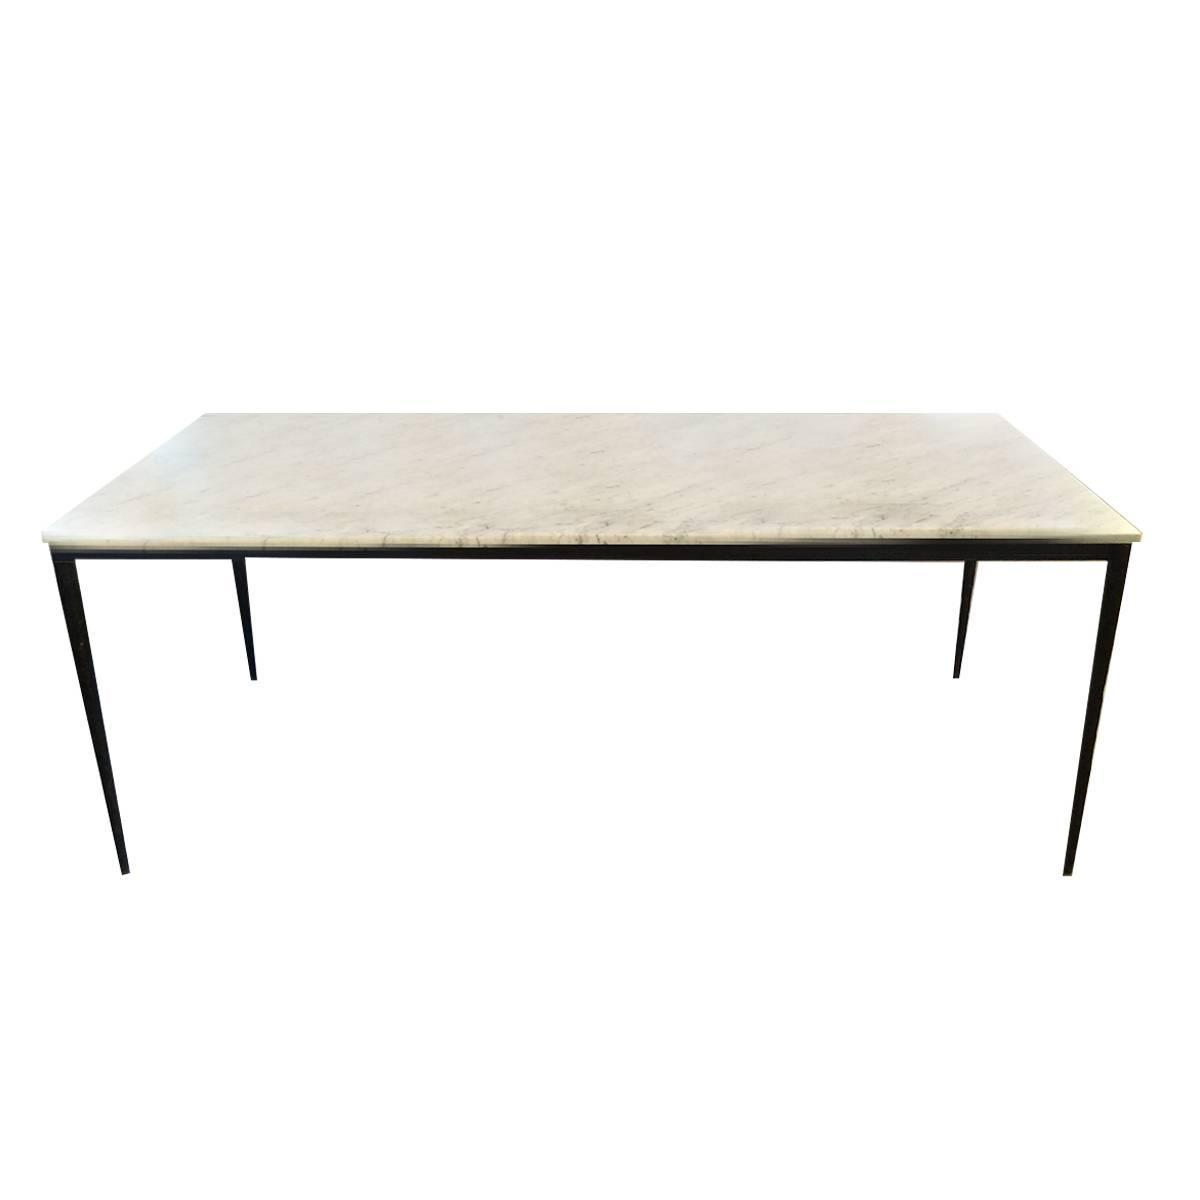 Marble Dining Table For Sale At 1stdibs